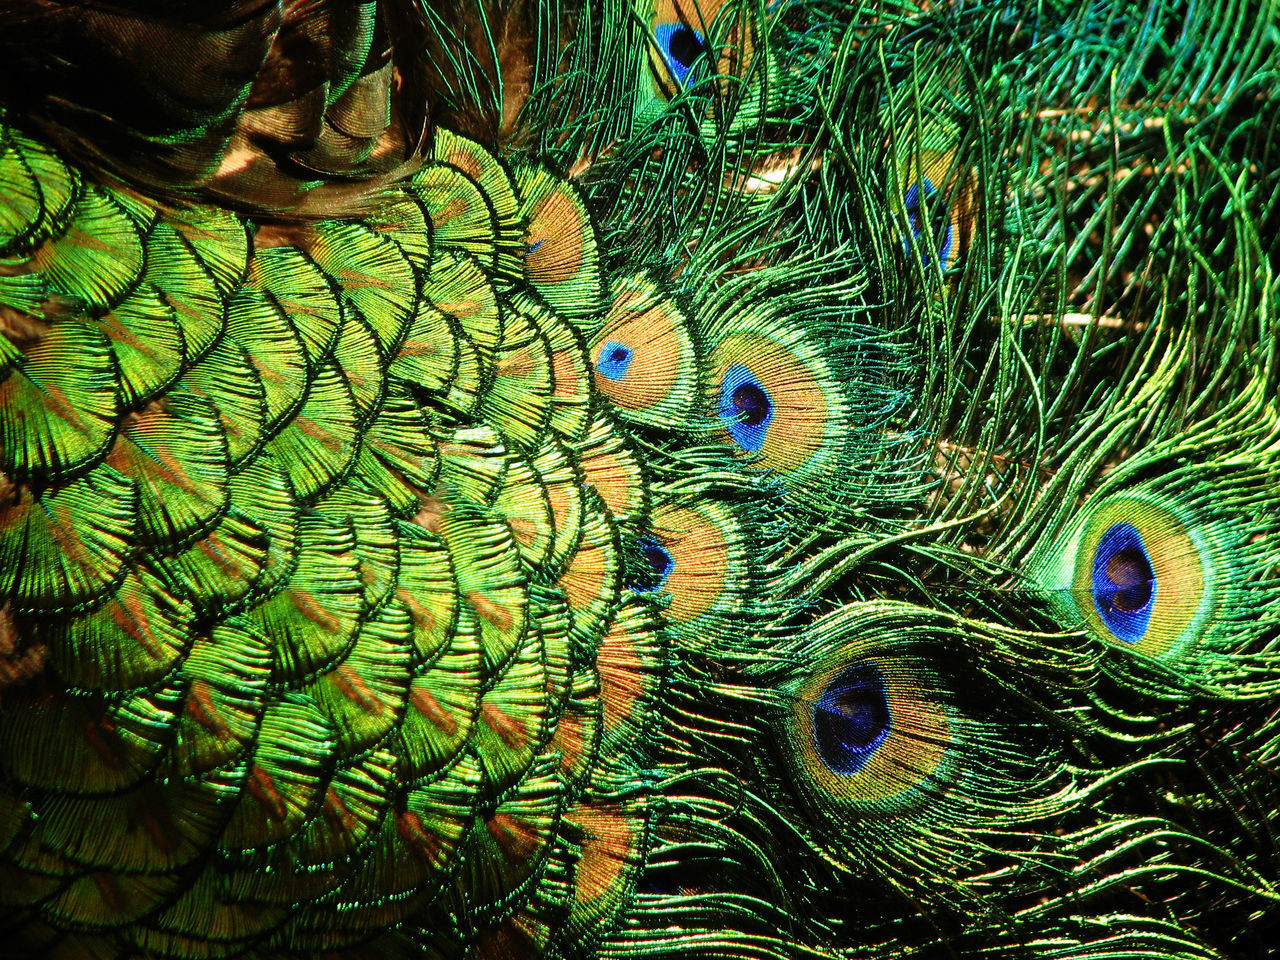 peacock feather, multi colored, green color, animal themes, animal, peacock, feather, bird, full frame, no people, vertebrate, close-up, natural pattern, pattern, beauty in nature, backgrounds, animal wildlife, fragility, animals in the wild, vulnerability, softness, outdoors